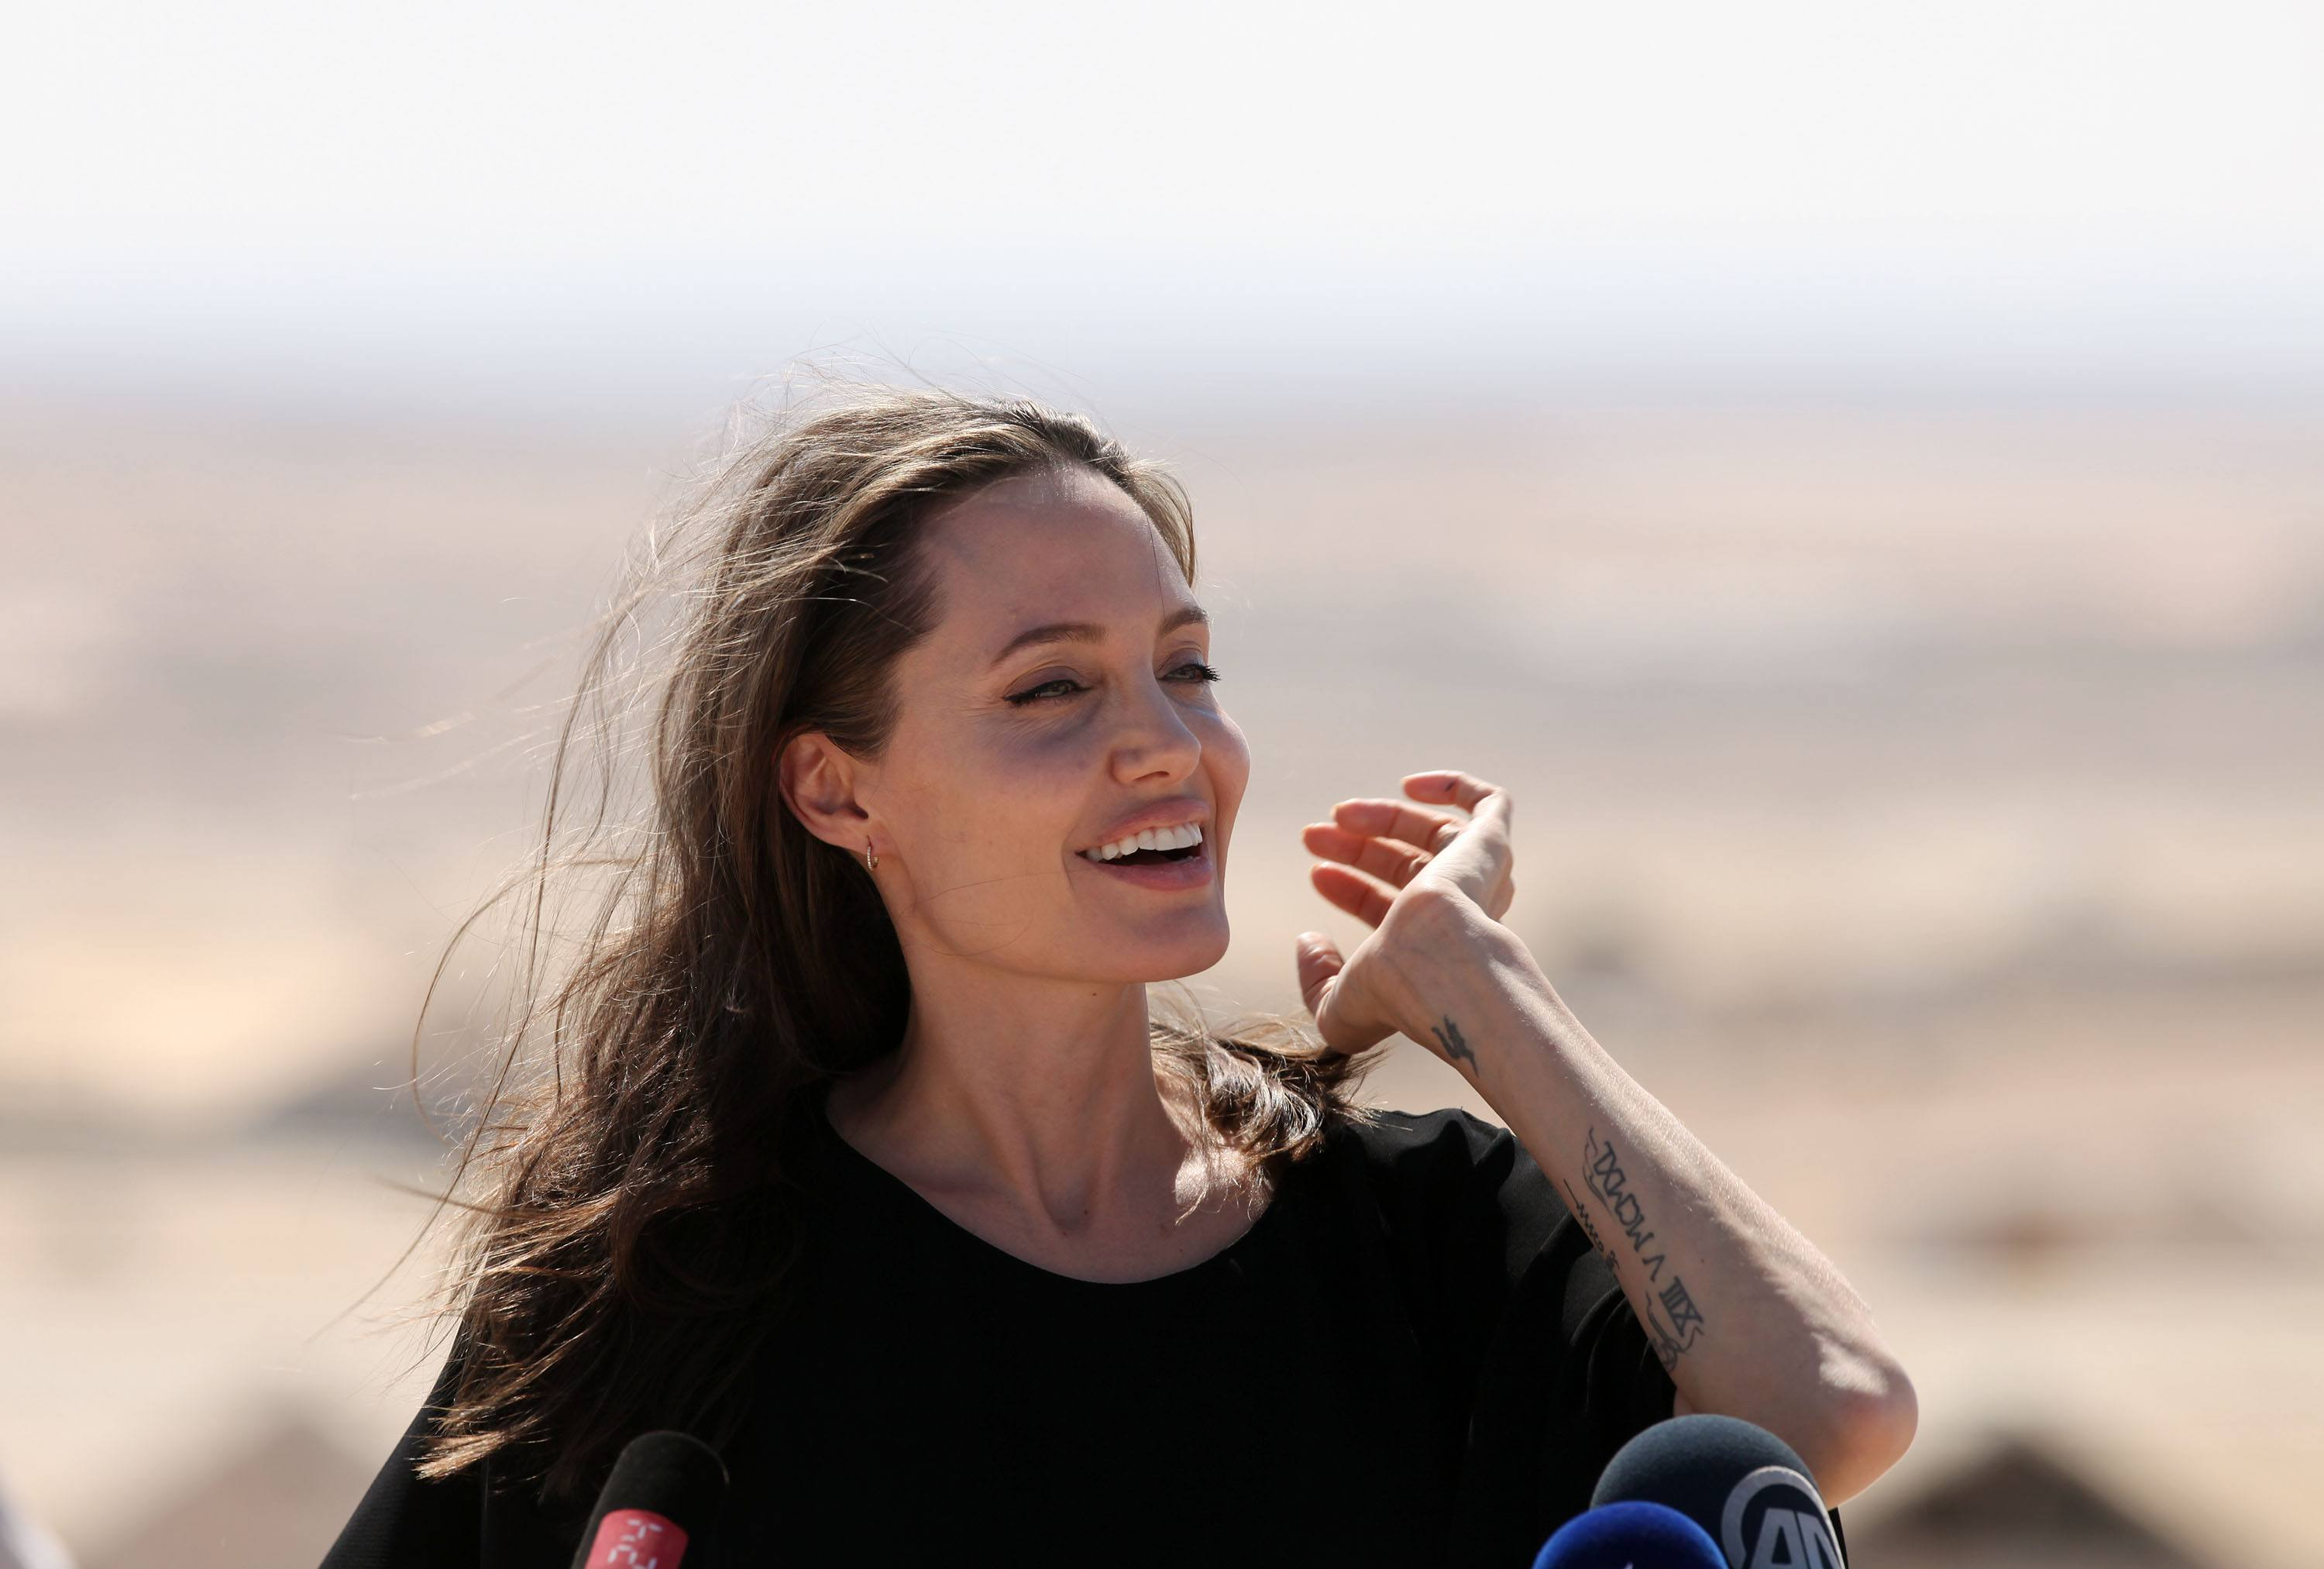 Angelina Jolie holds a press conference at Al- Azraq camp for Syrian refugees on September 9, 2016, in Azraq, Jordan